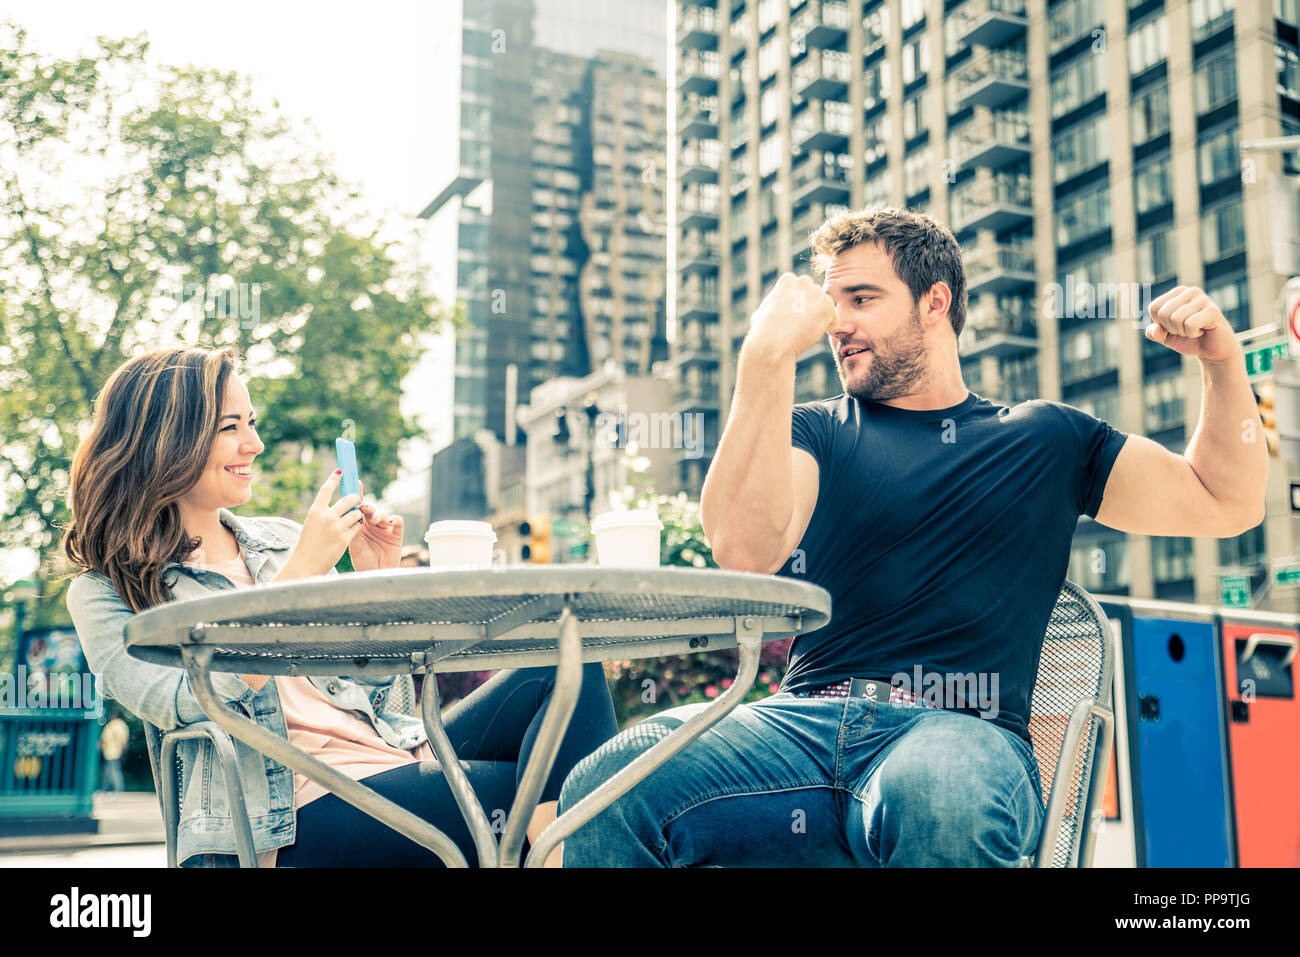 Dating In NYC Explained - Thrillist